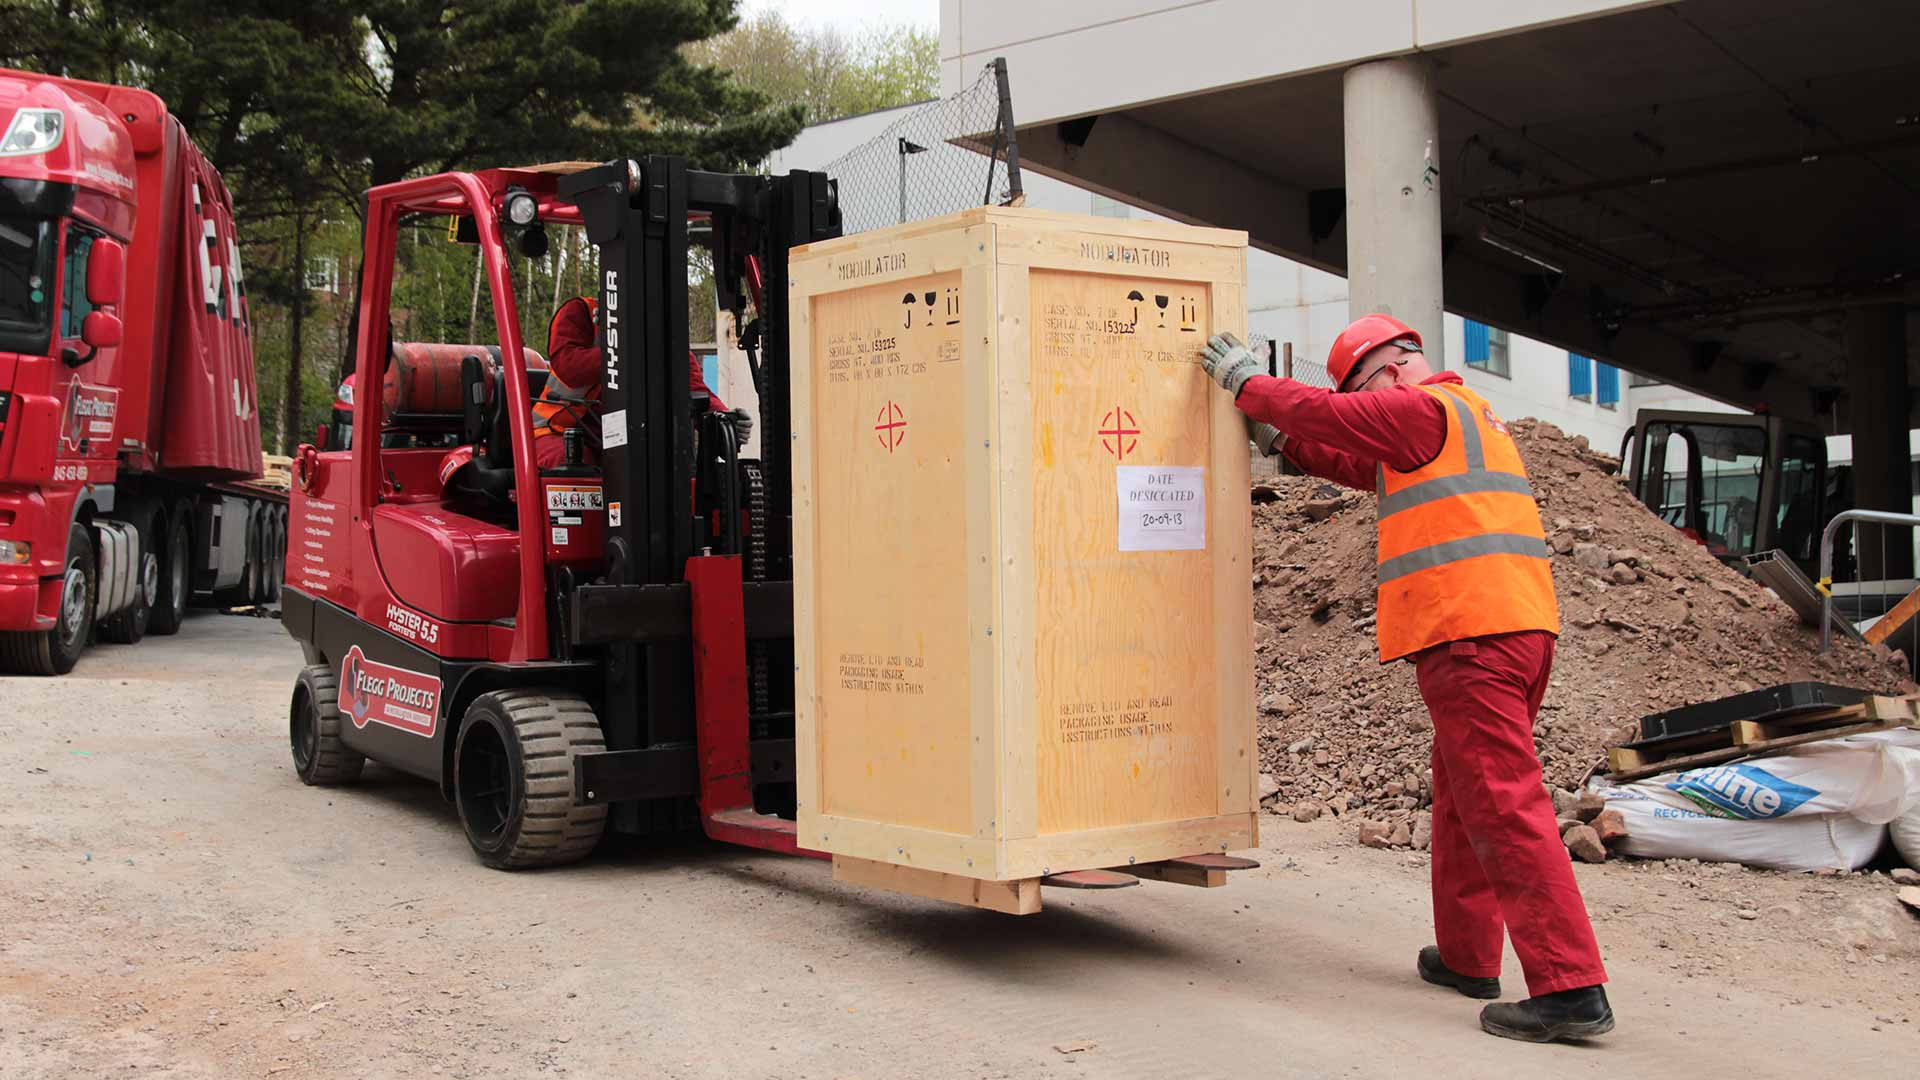 large crate on a forklift